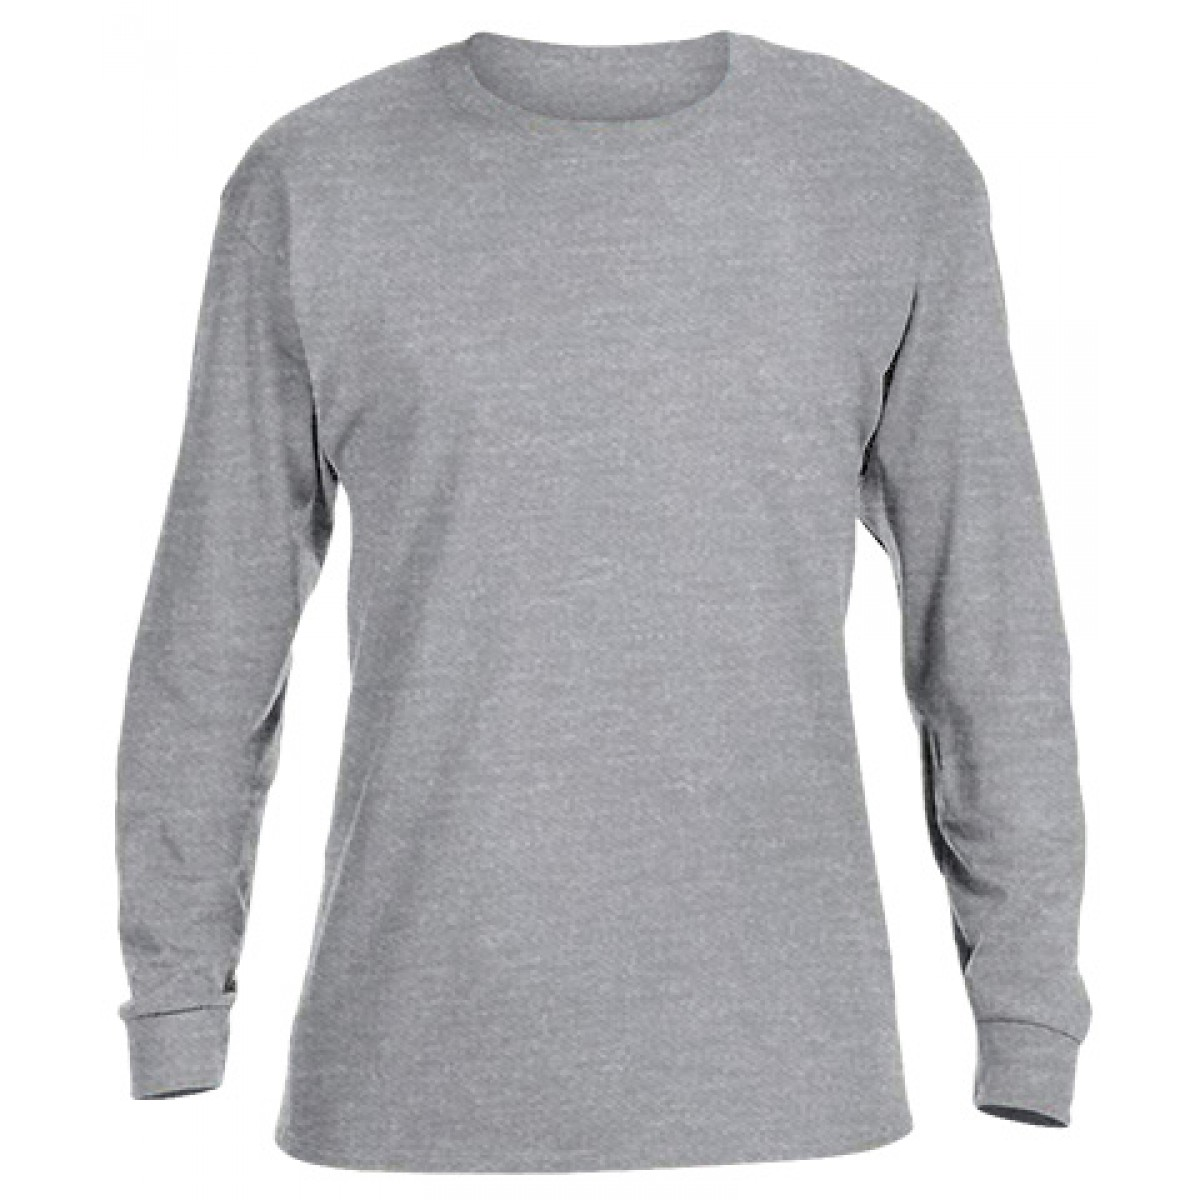 Basic Long Sleeve Crew Neck -Ash Gray-M